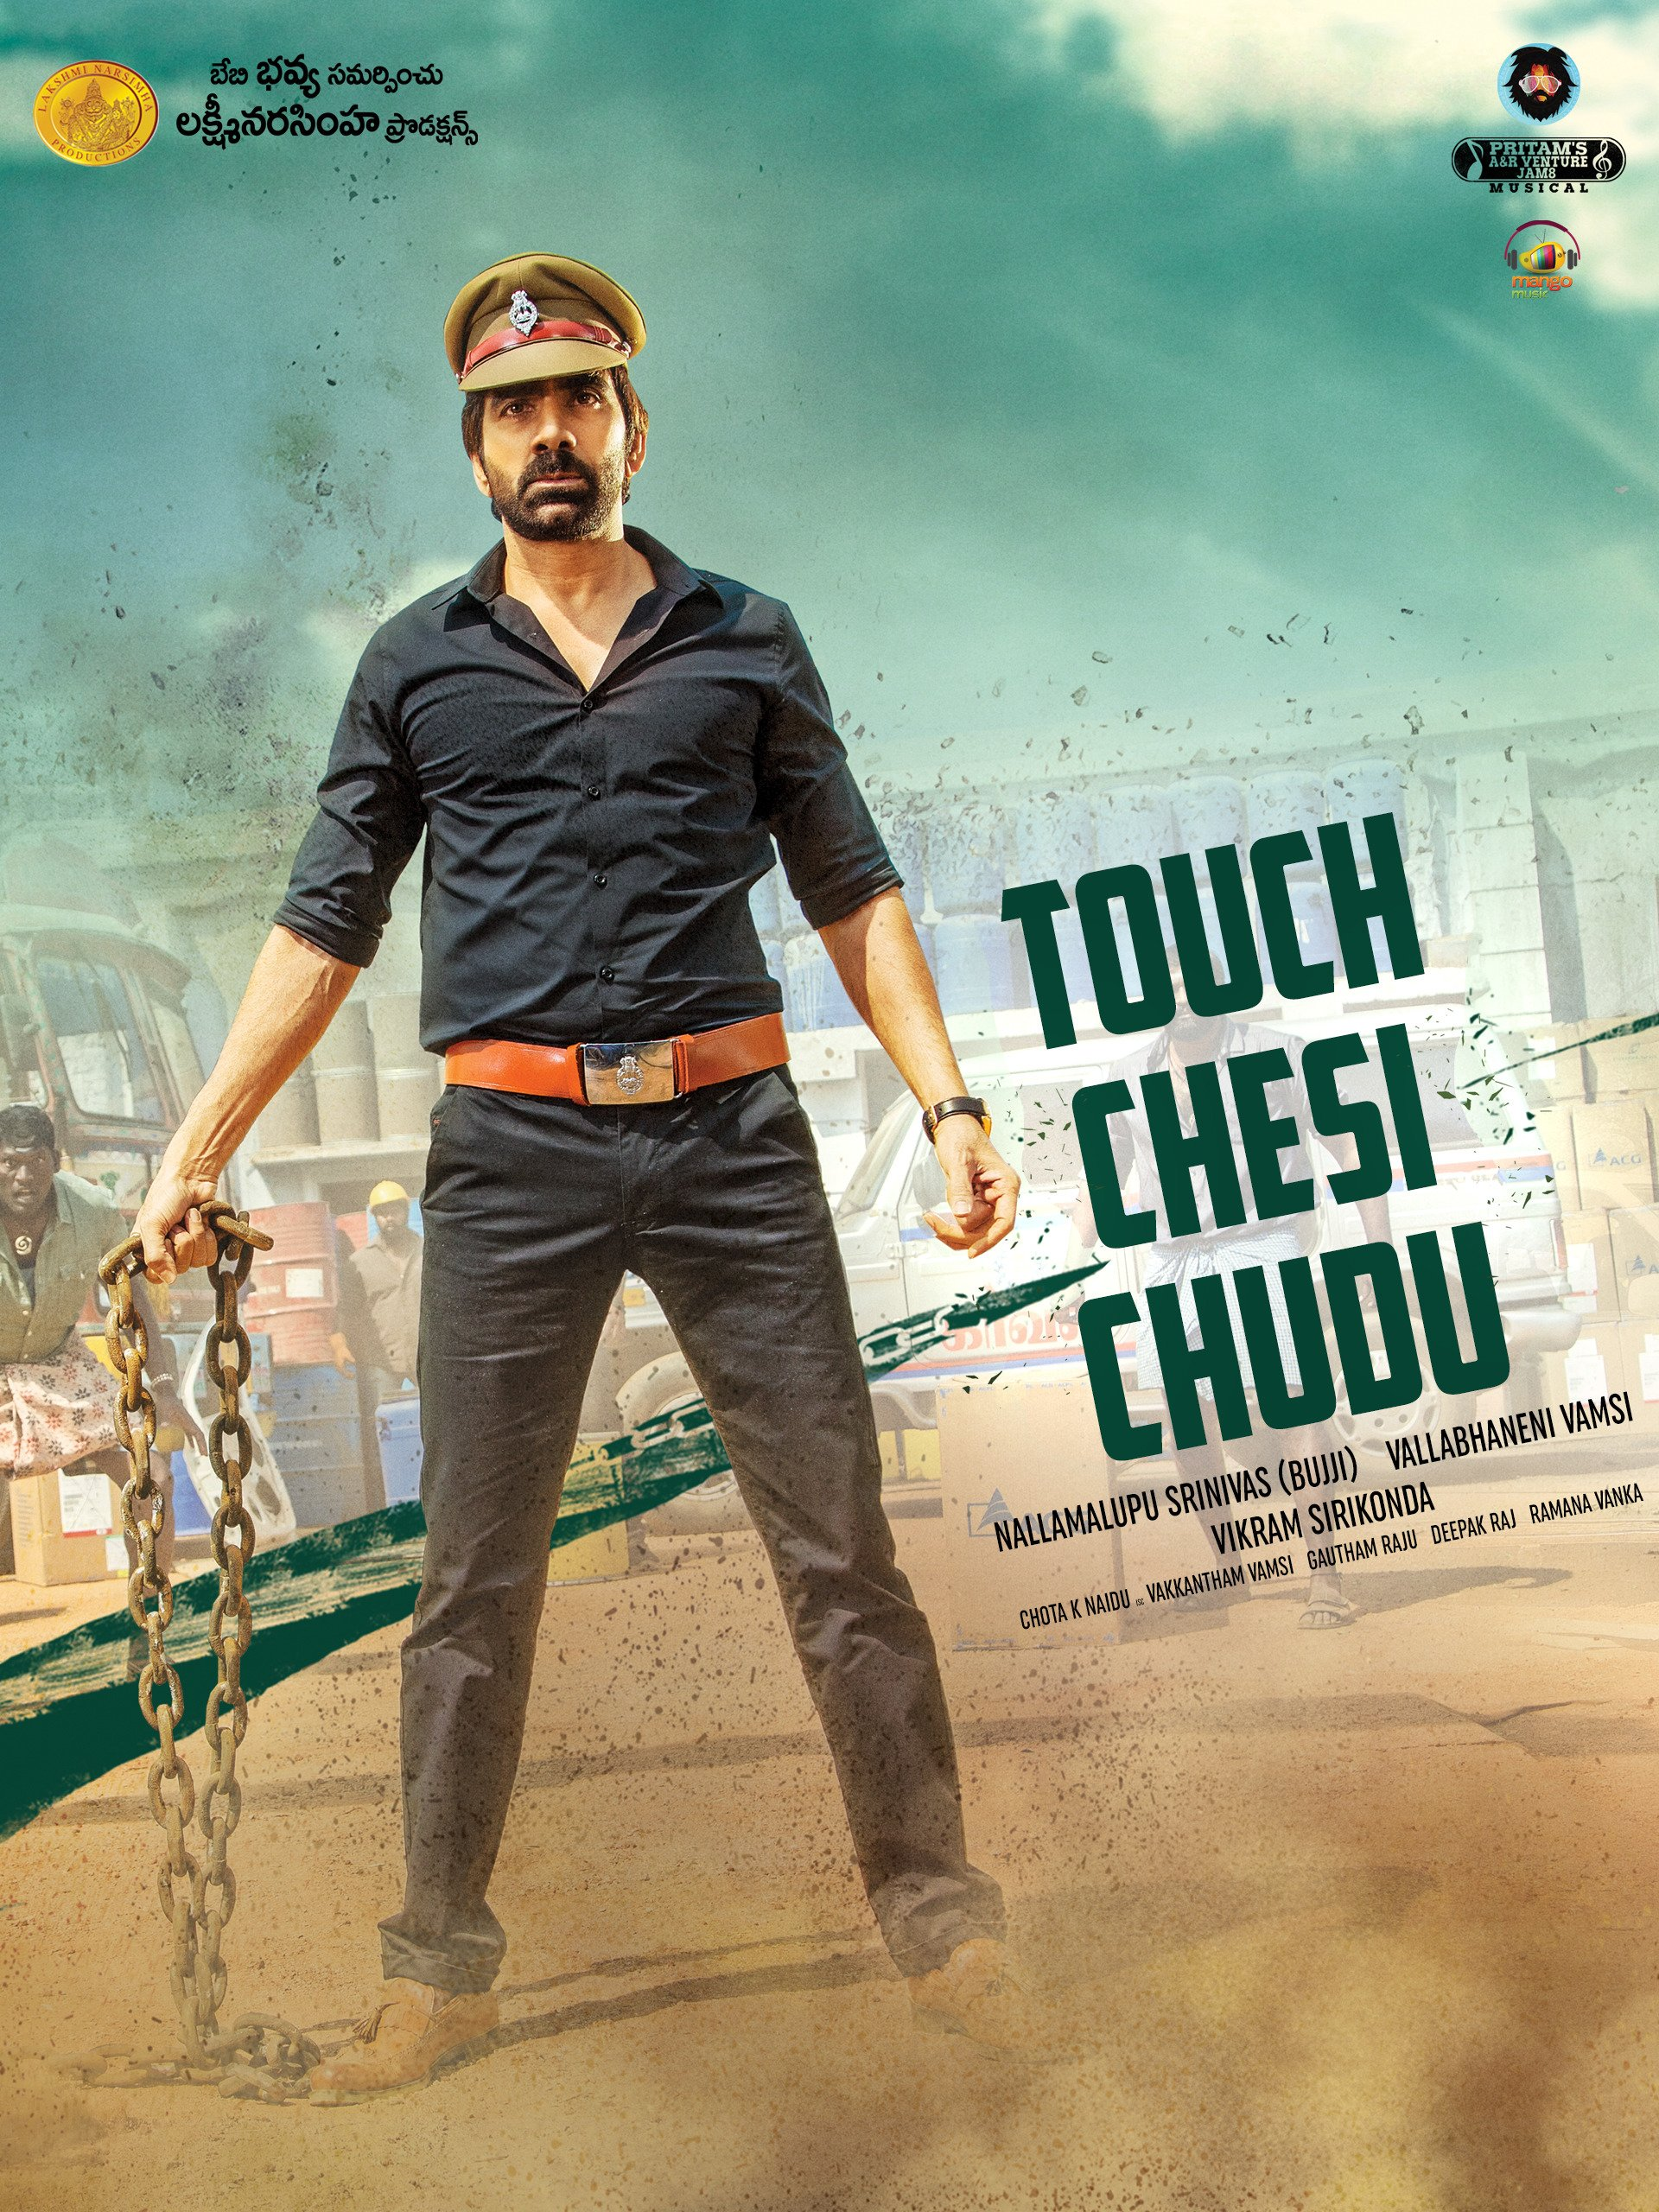 Touch Chesi Chudu (2021) Bengali Dubbed 1080p UNCUT HDRip 2.8GB Download